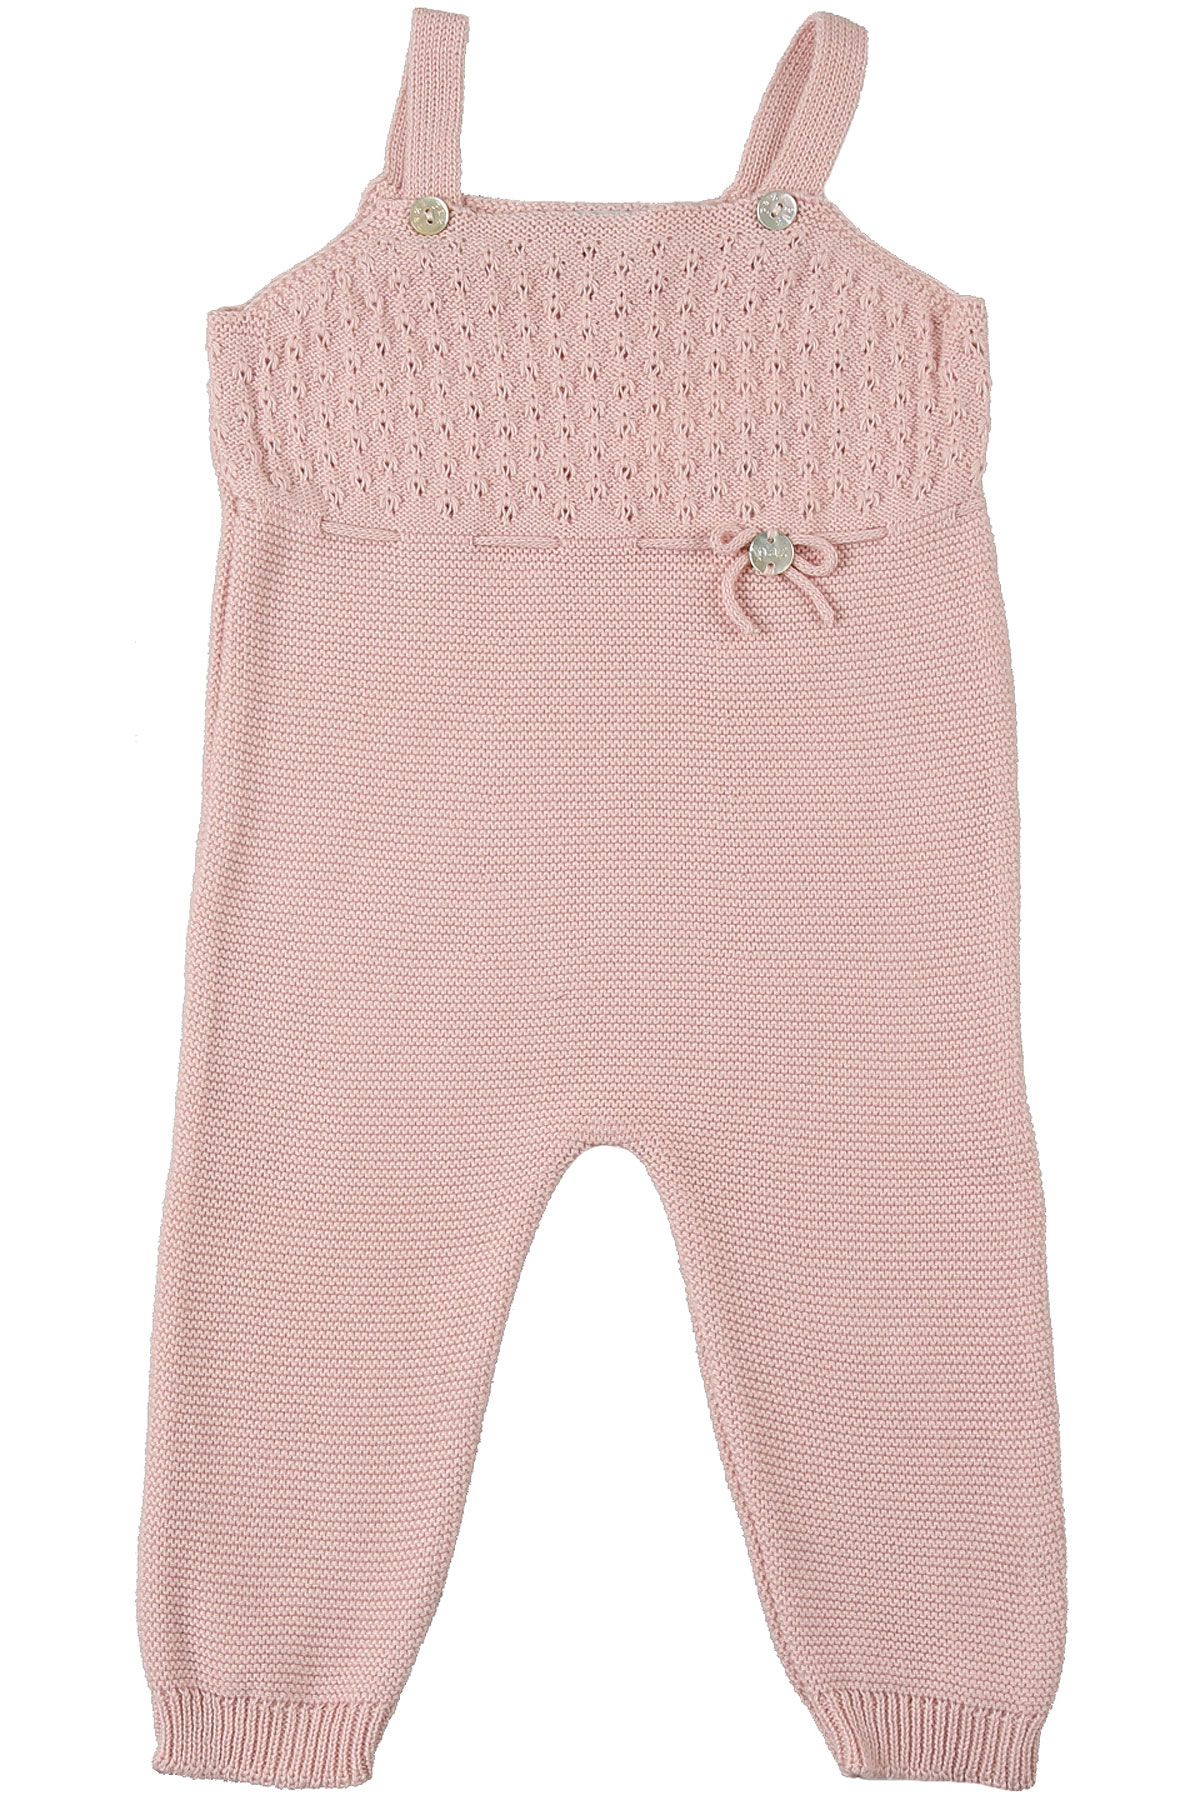 Paz Rodriguez Baby Bodysuits & Onesies for Girls On Sale, Baby Pink, Cotton, 2019, 3M 6M